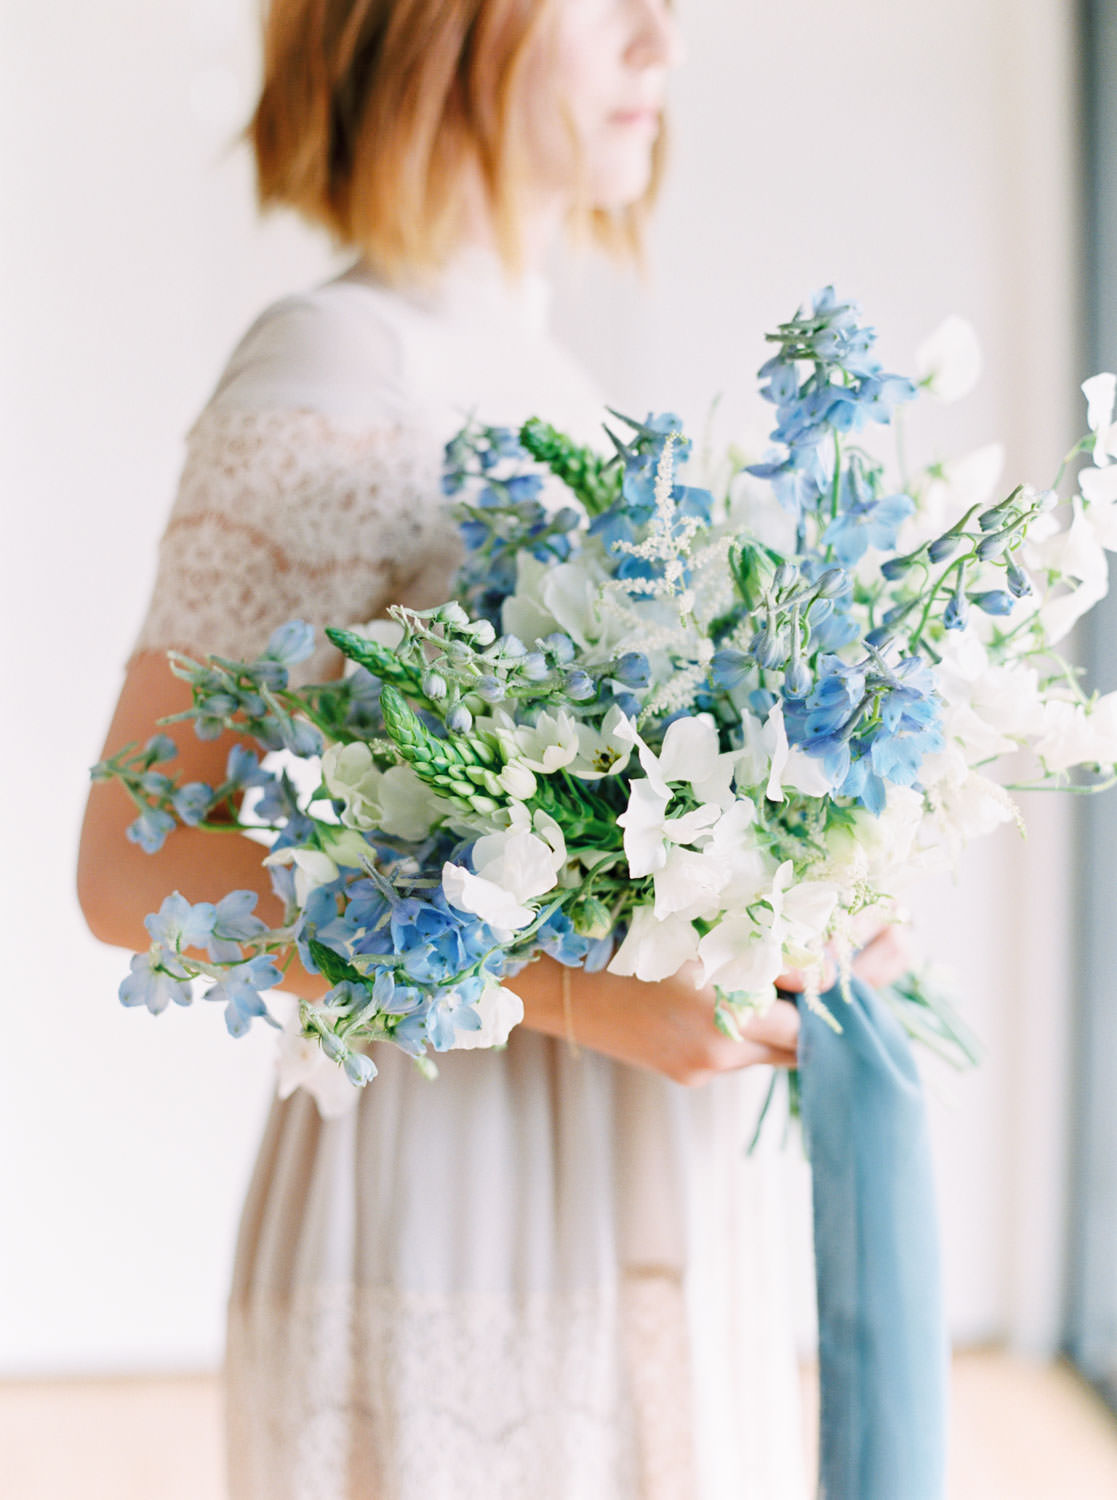 Wedding film photography image of a Bride with white and green bouquet with blue sweet peas and blue ribbons, Cavin Elizabeth Photography and Organic Flora